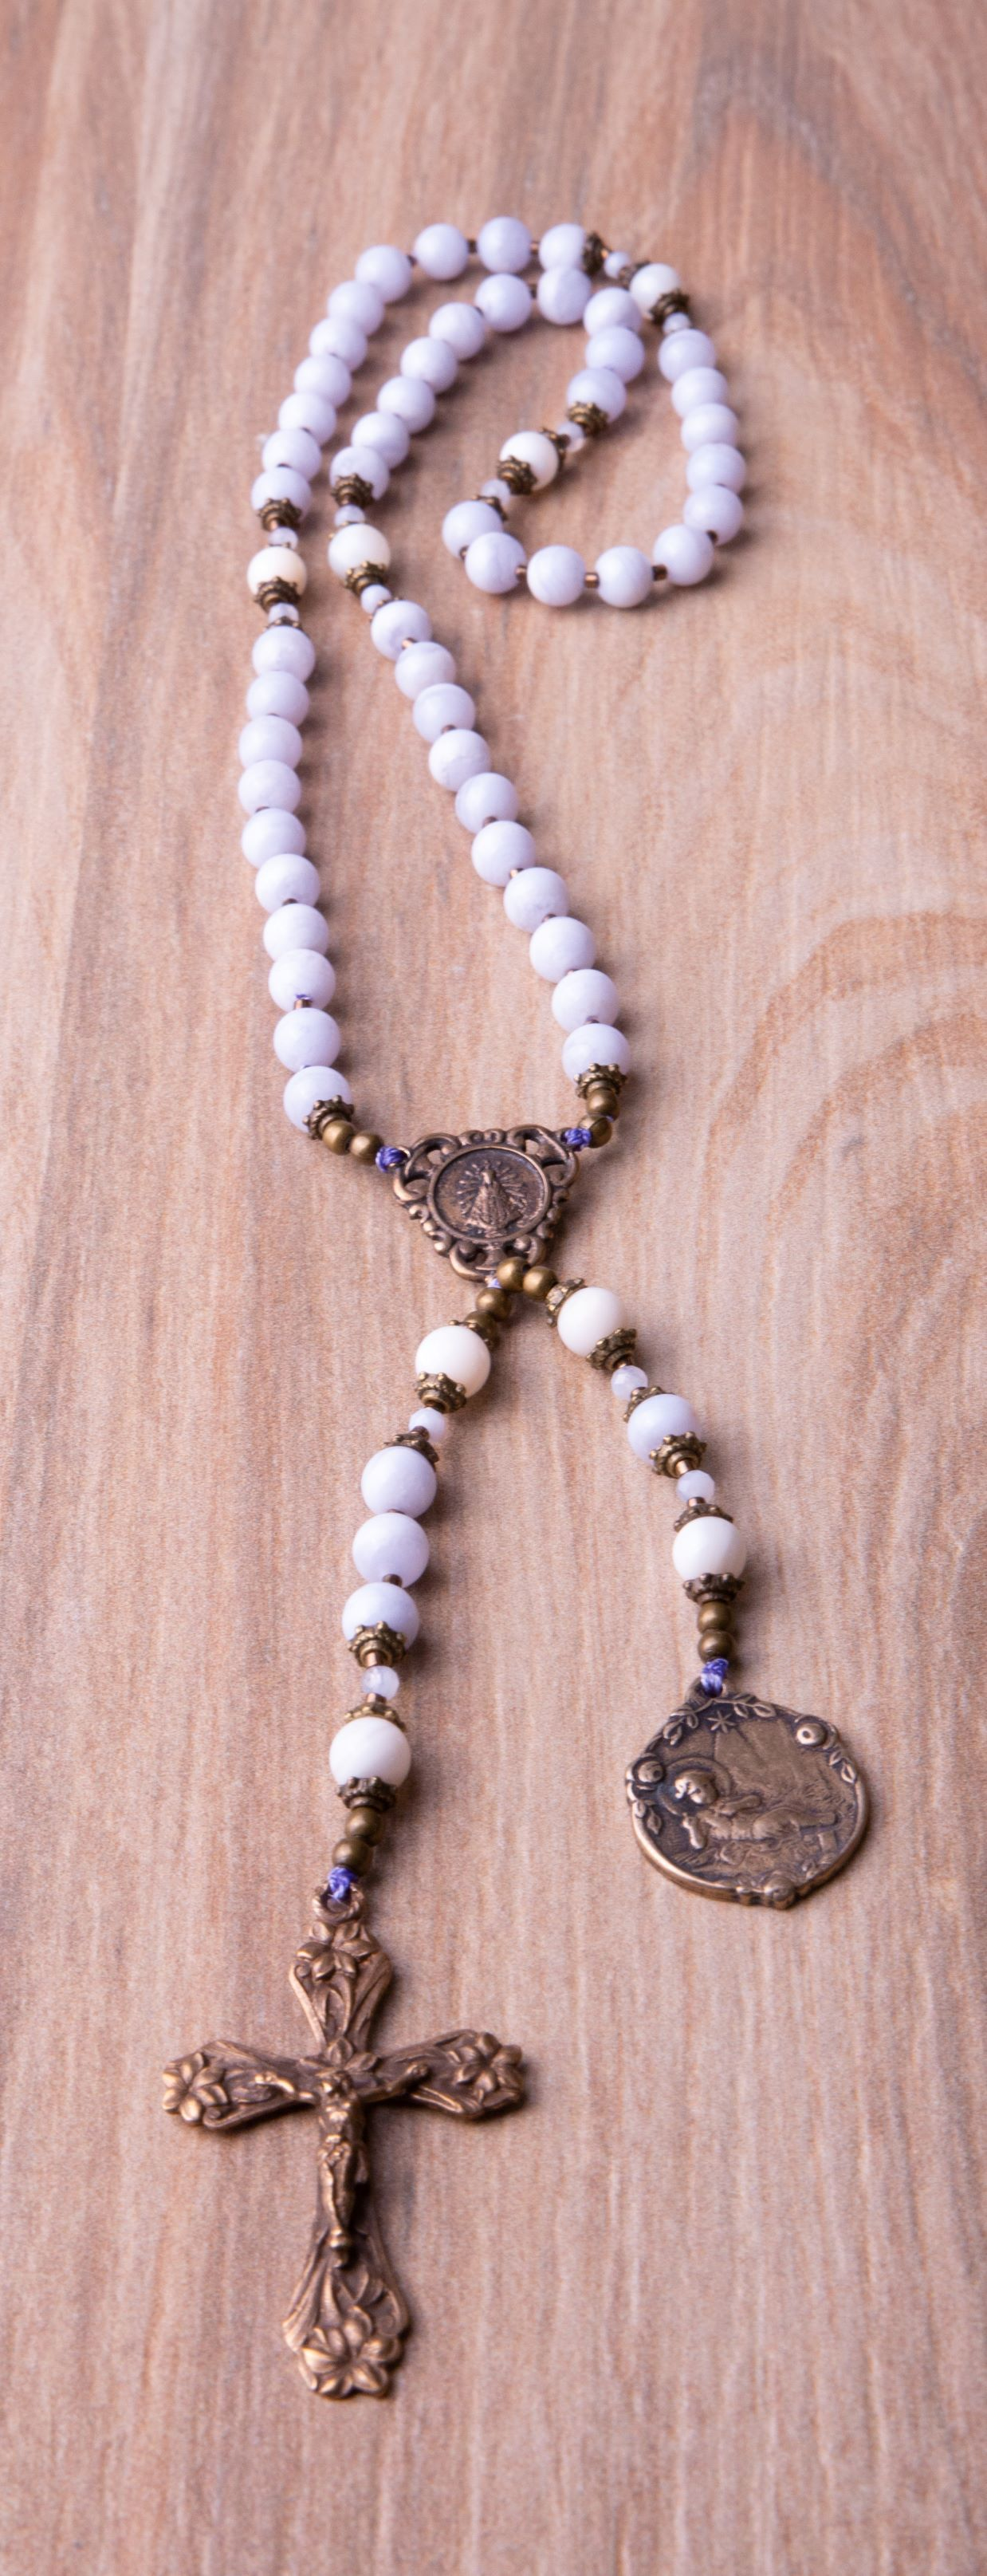 Need a baptism gift? This rosary makes a lovely gift for ...